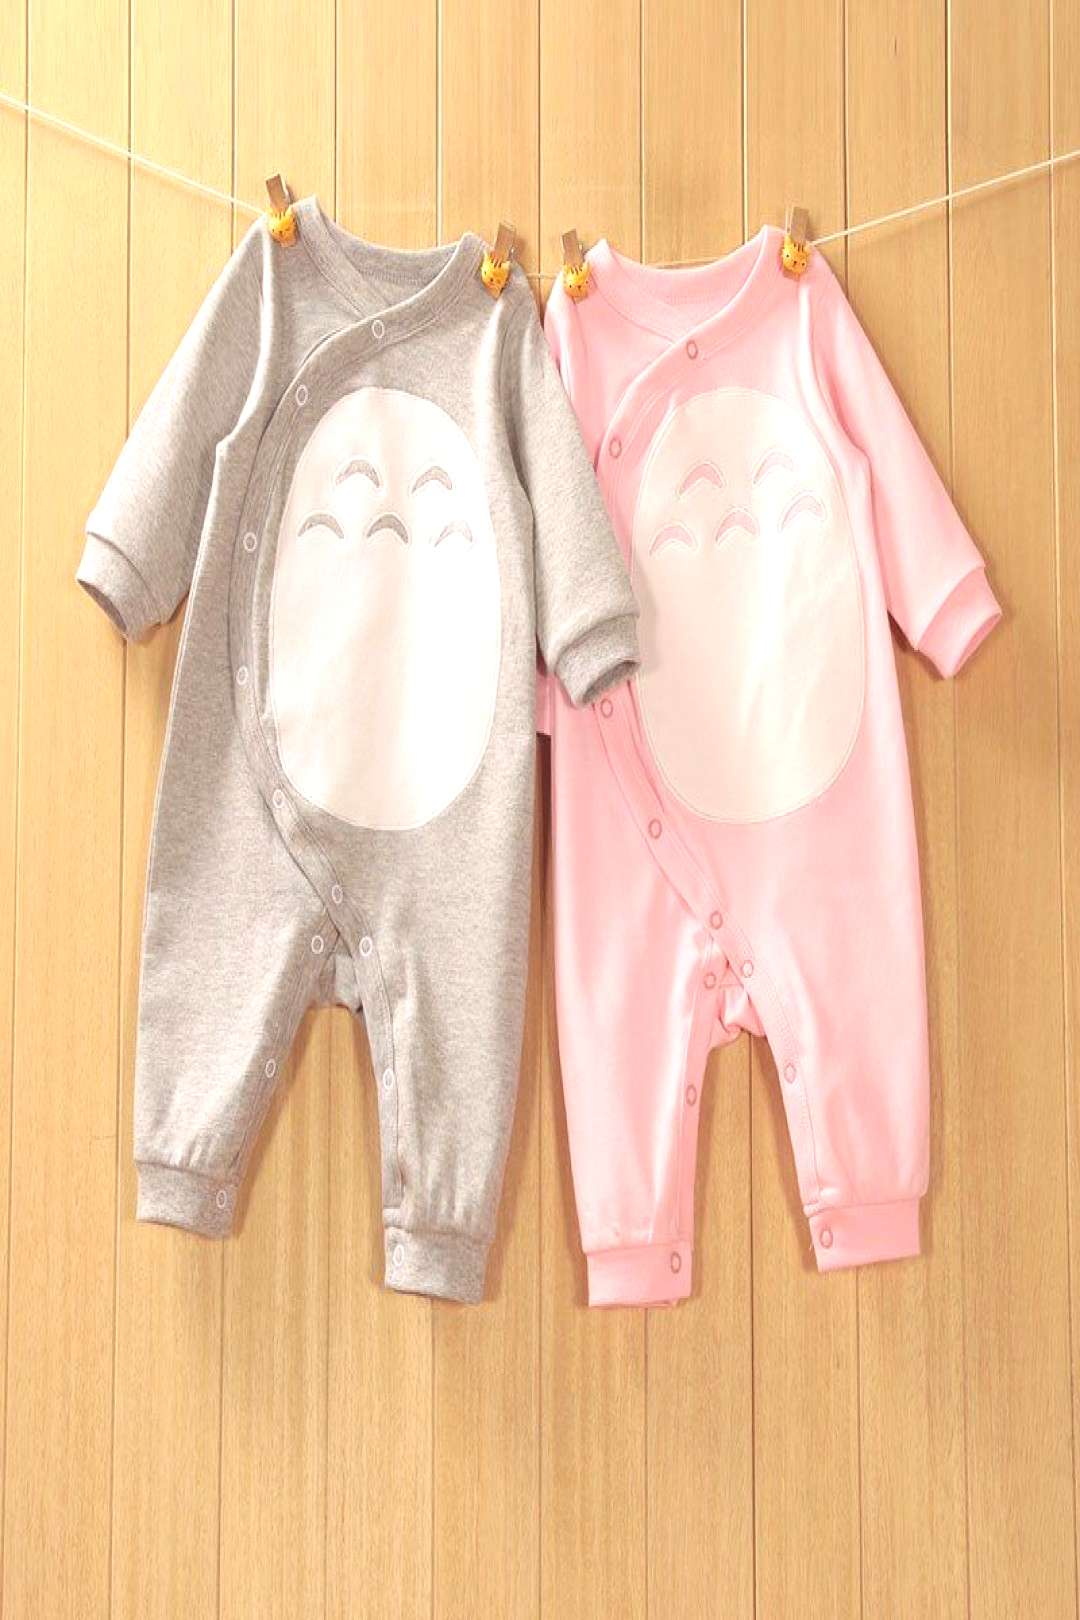 2017 High Quality Newborn Baby Romper Style Totoro Baby Spring Romper Soft Comfortable Breathe Free